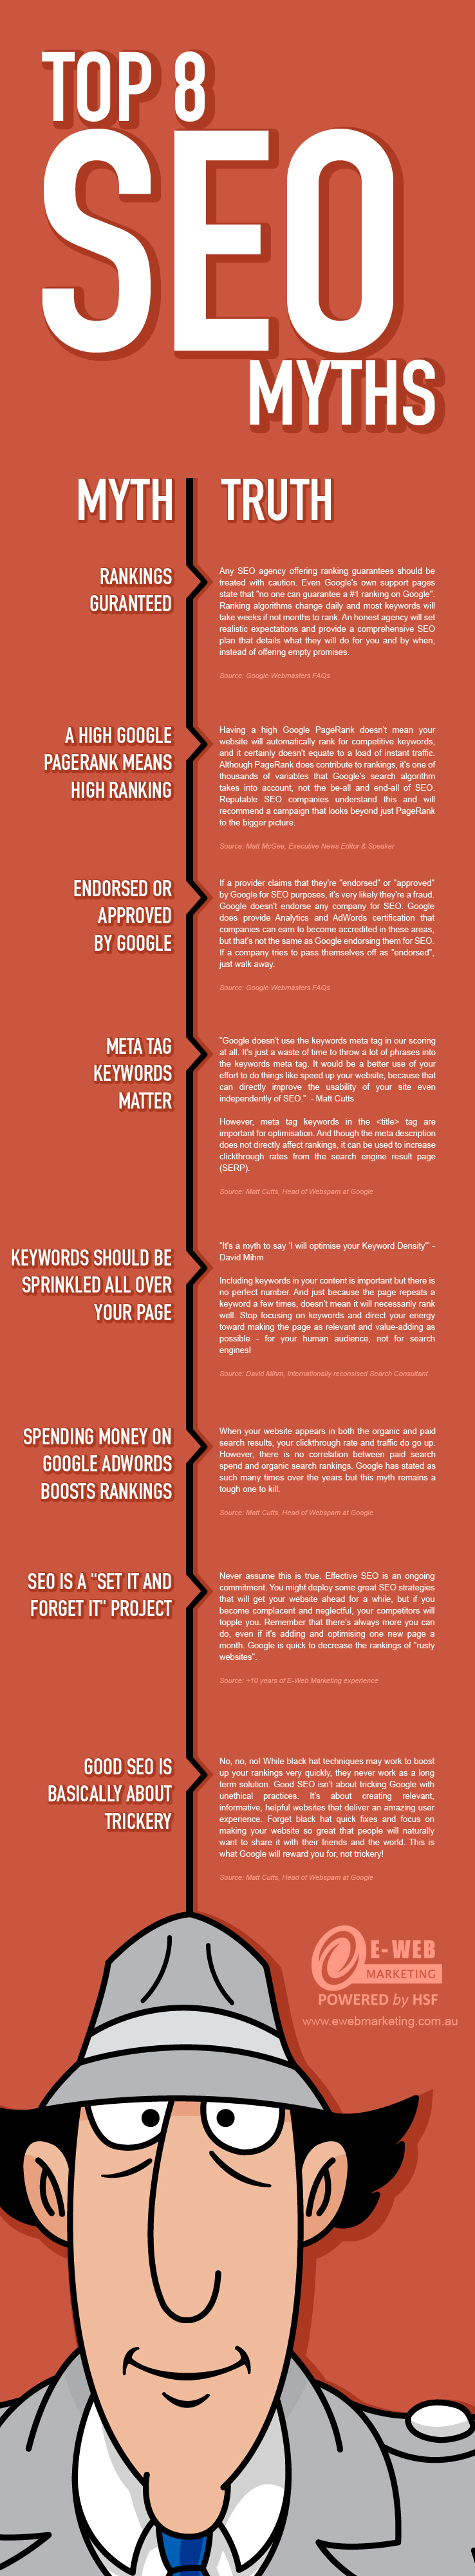 Top 8 SEO Myths Exposed!